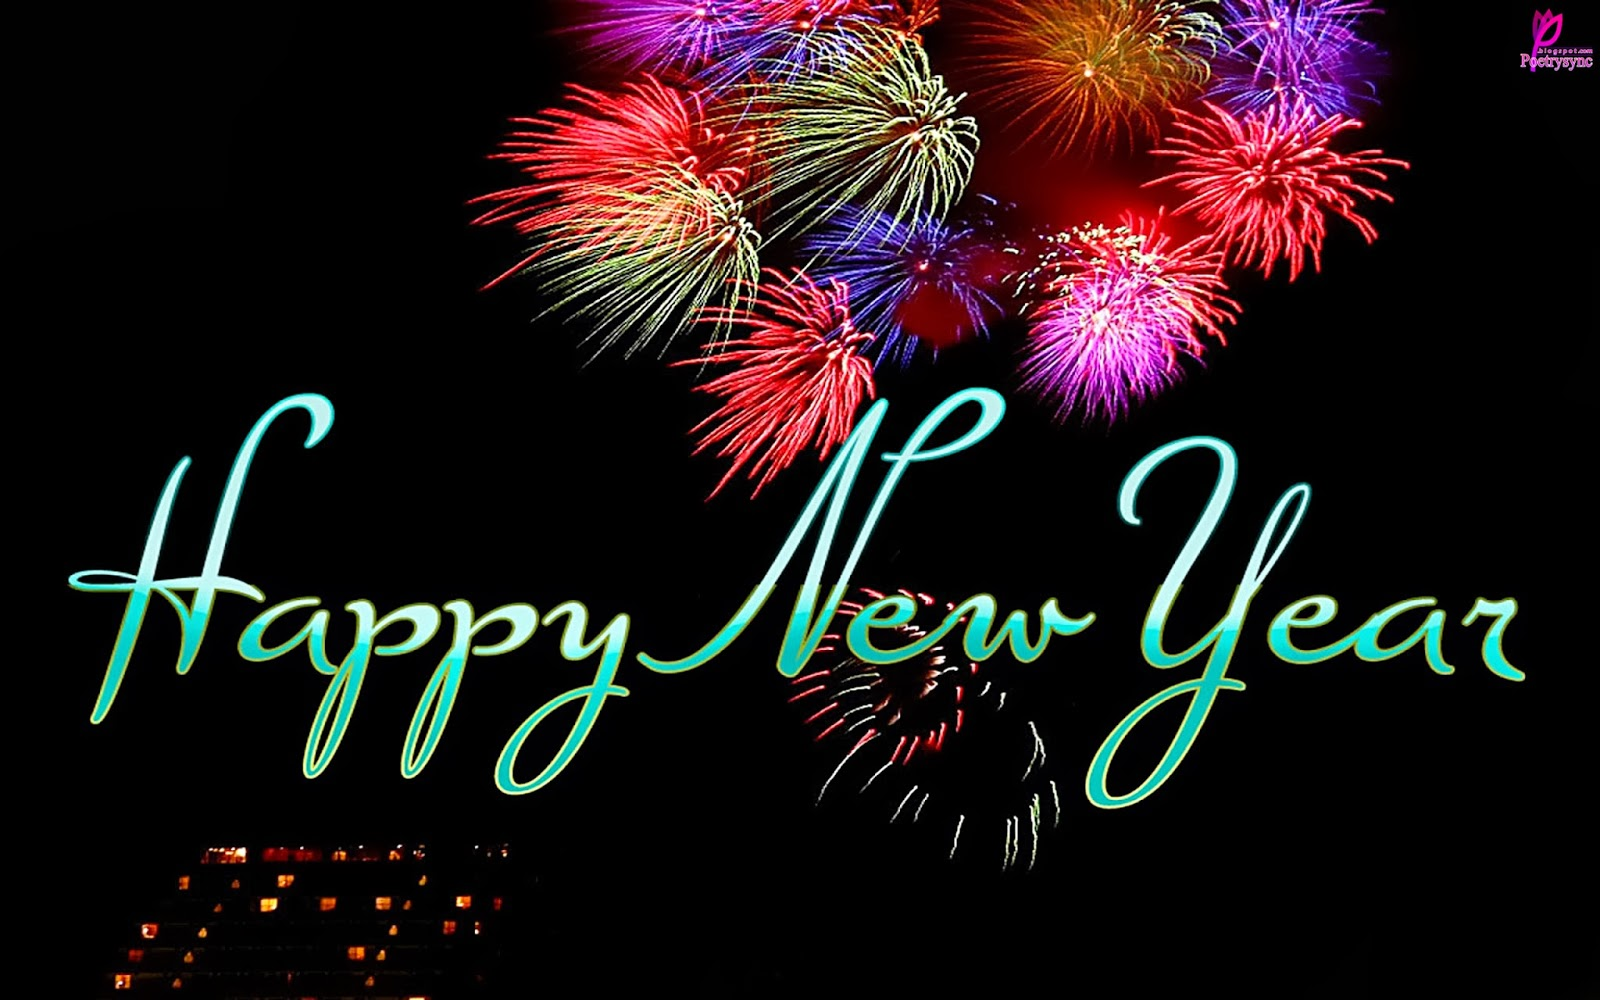 Happy new year 2014 help change the world the future of the happy new year wishes 2014 card with greetings m4hsunfo